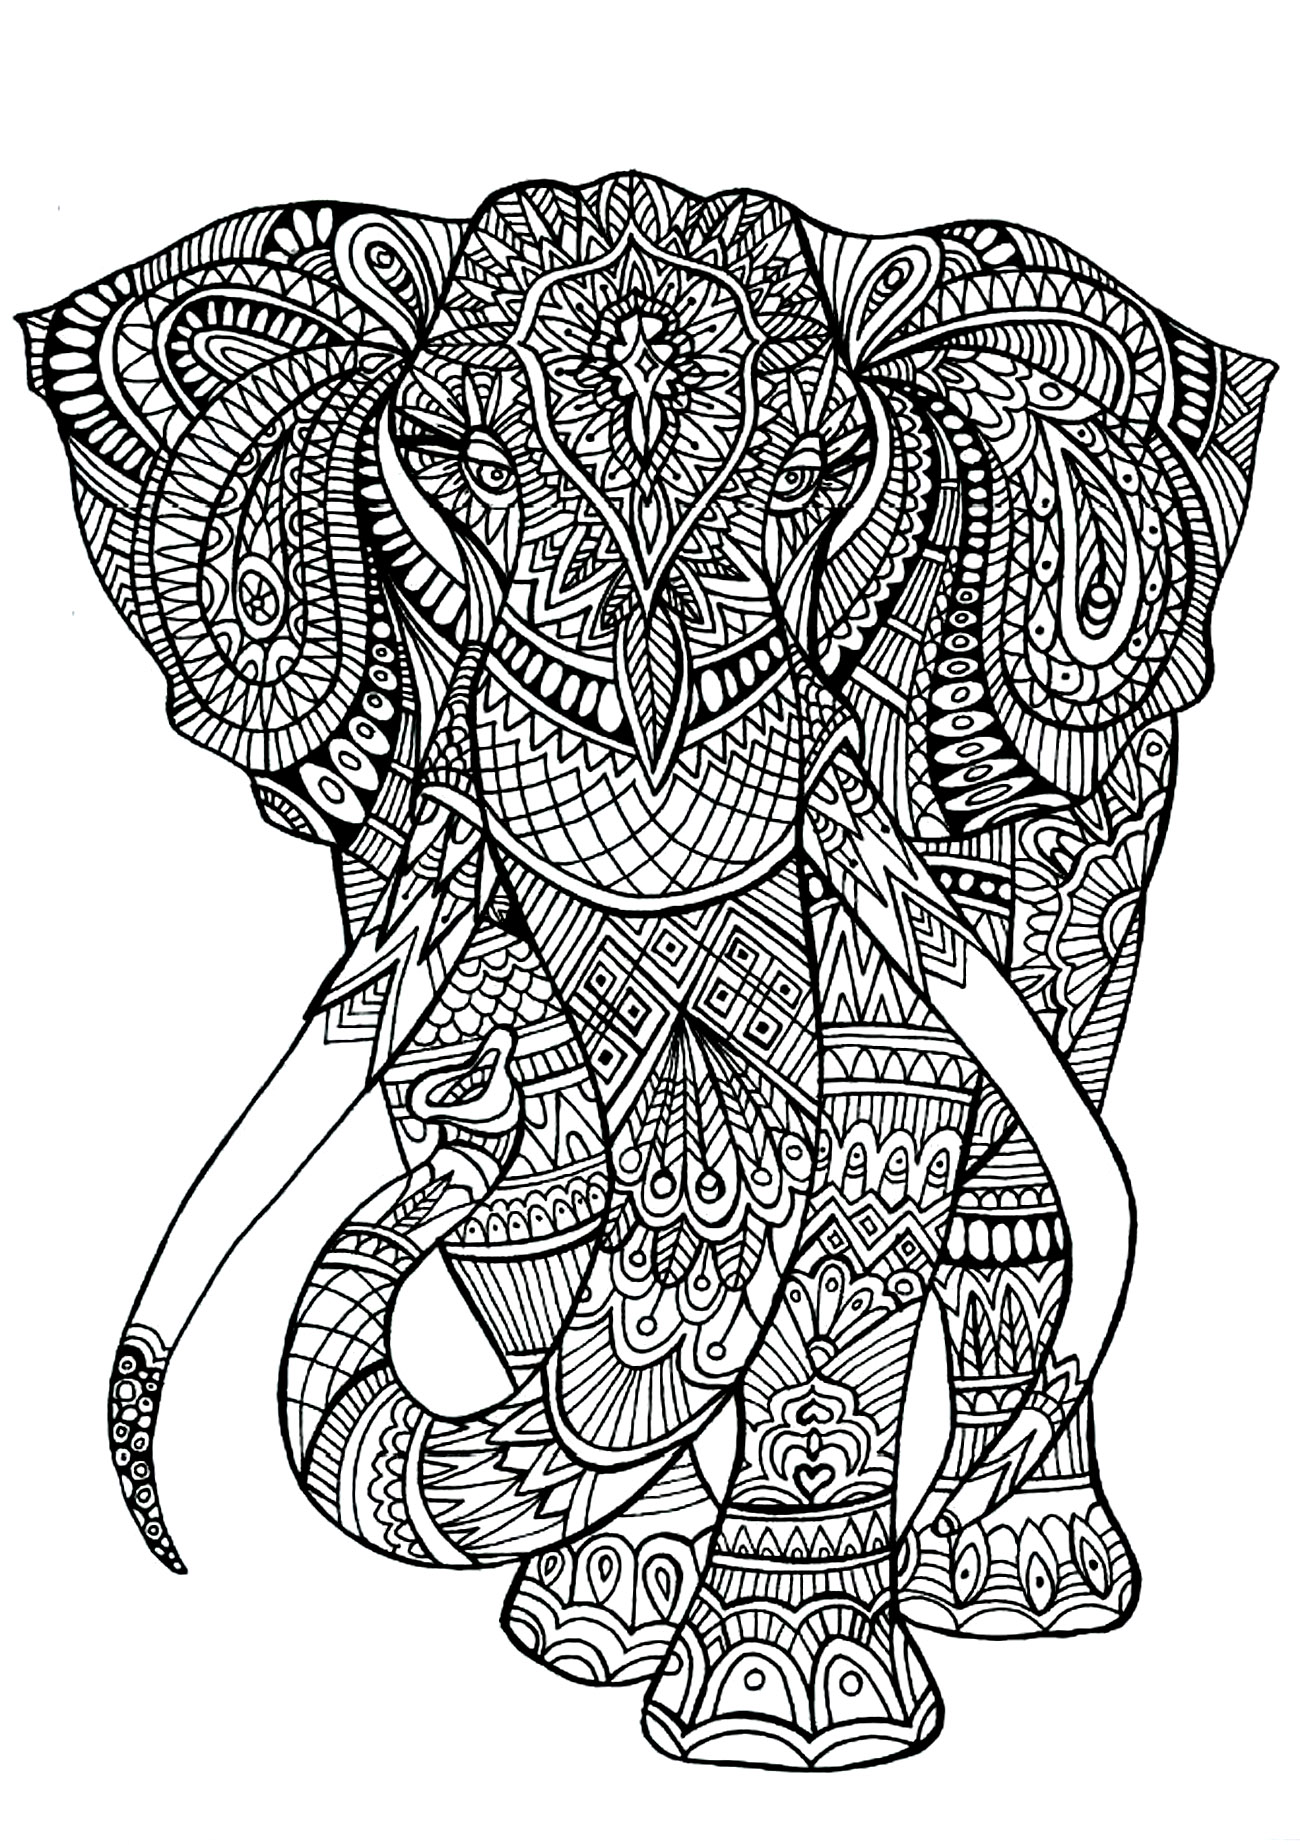 Elephant patterns - Elephants Adult Coloring Pages